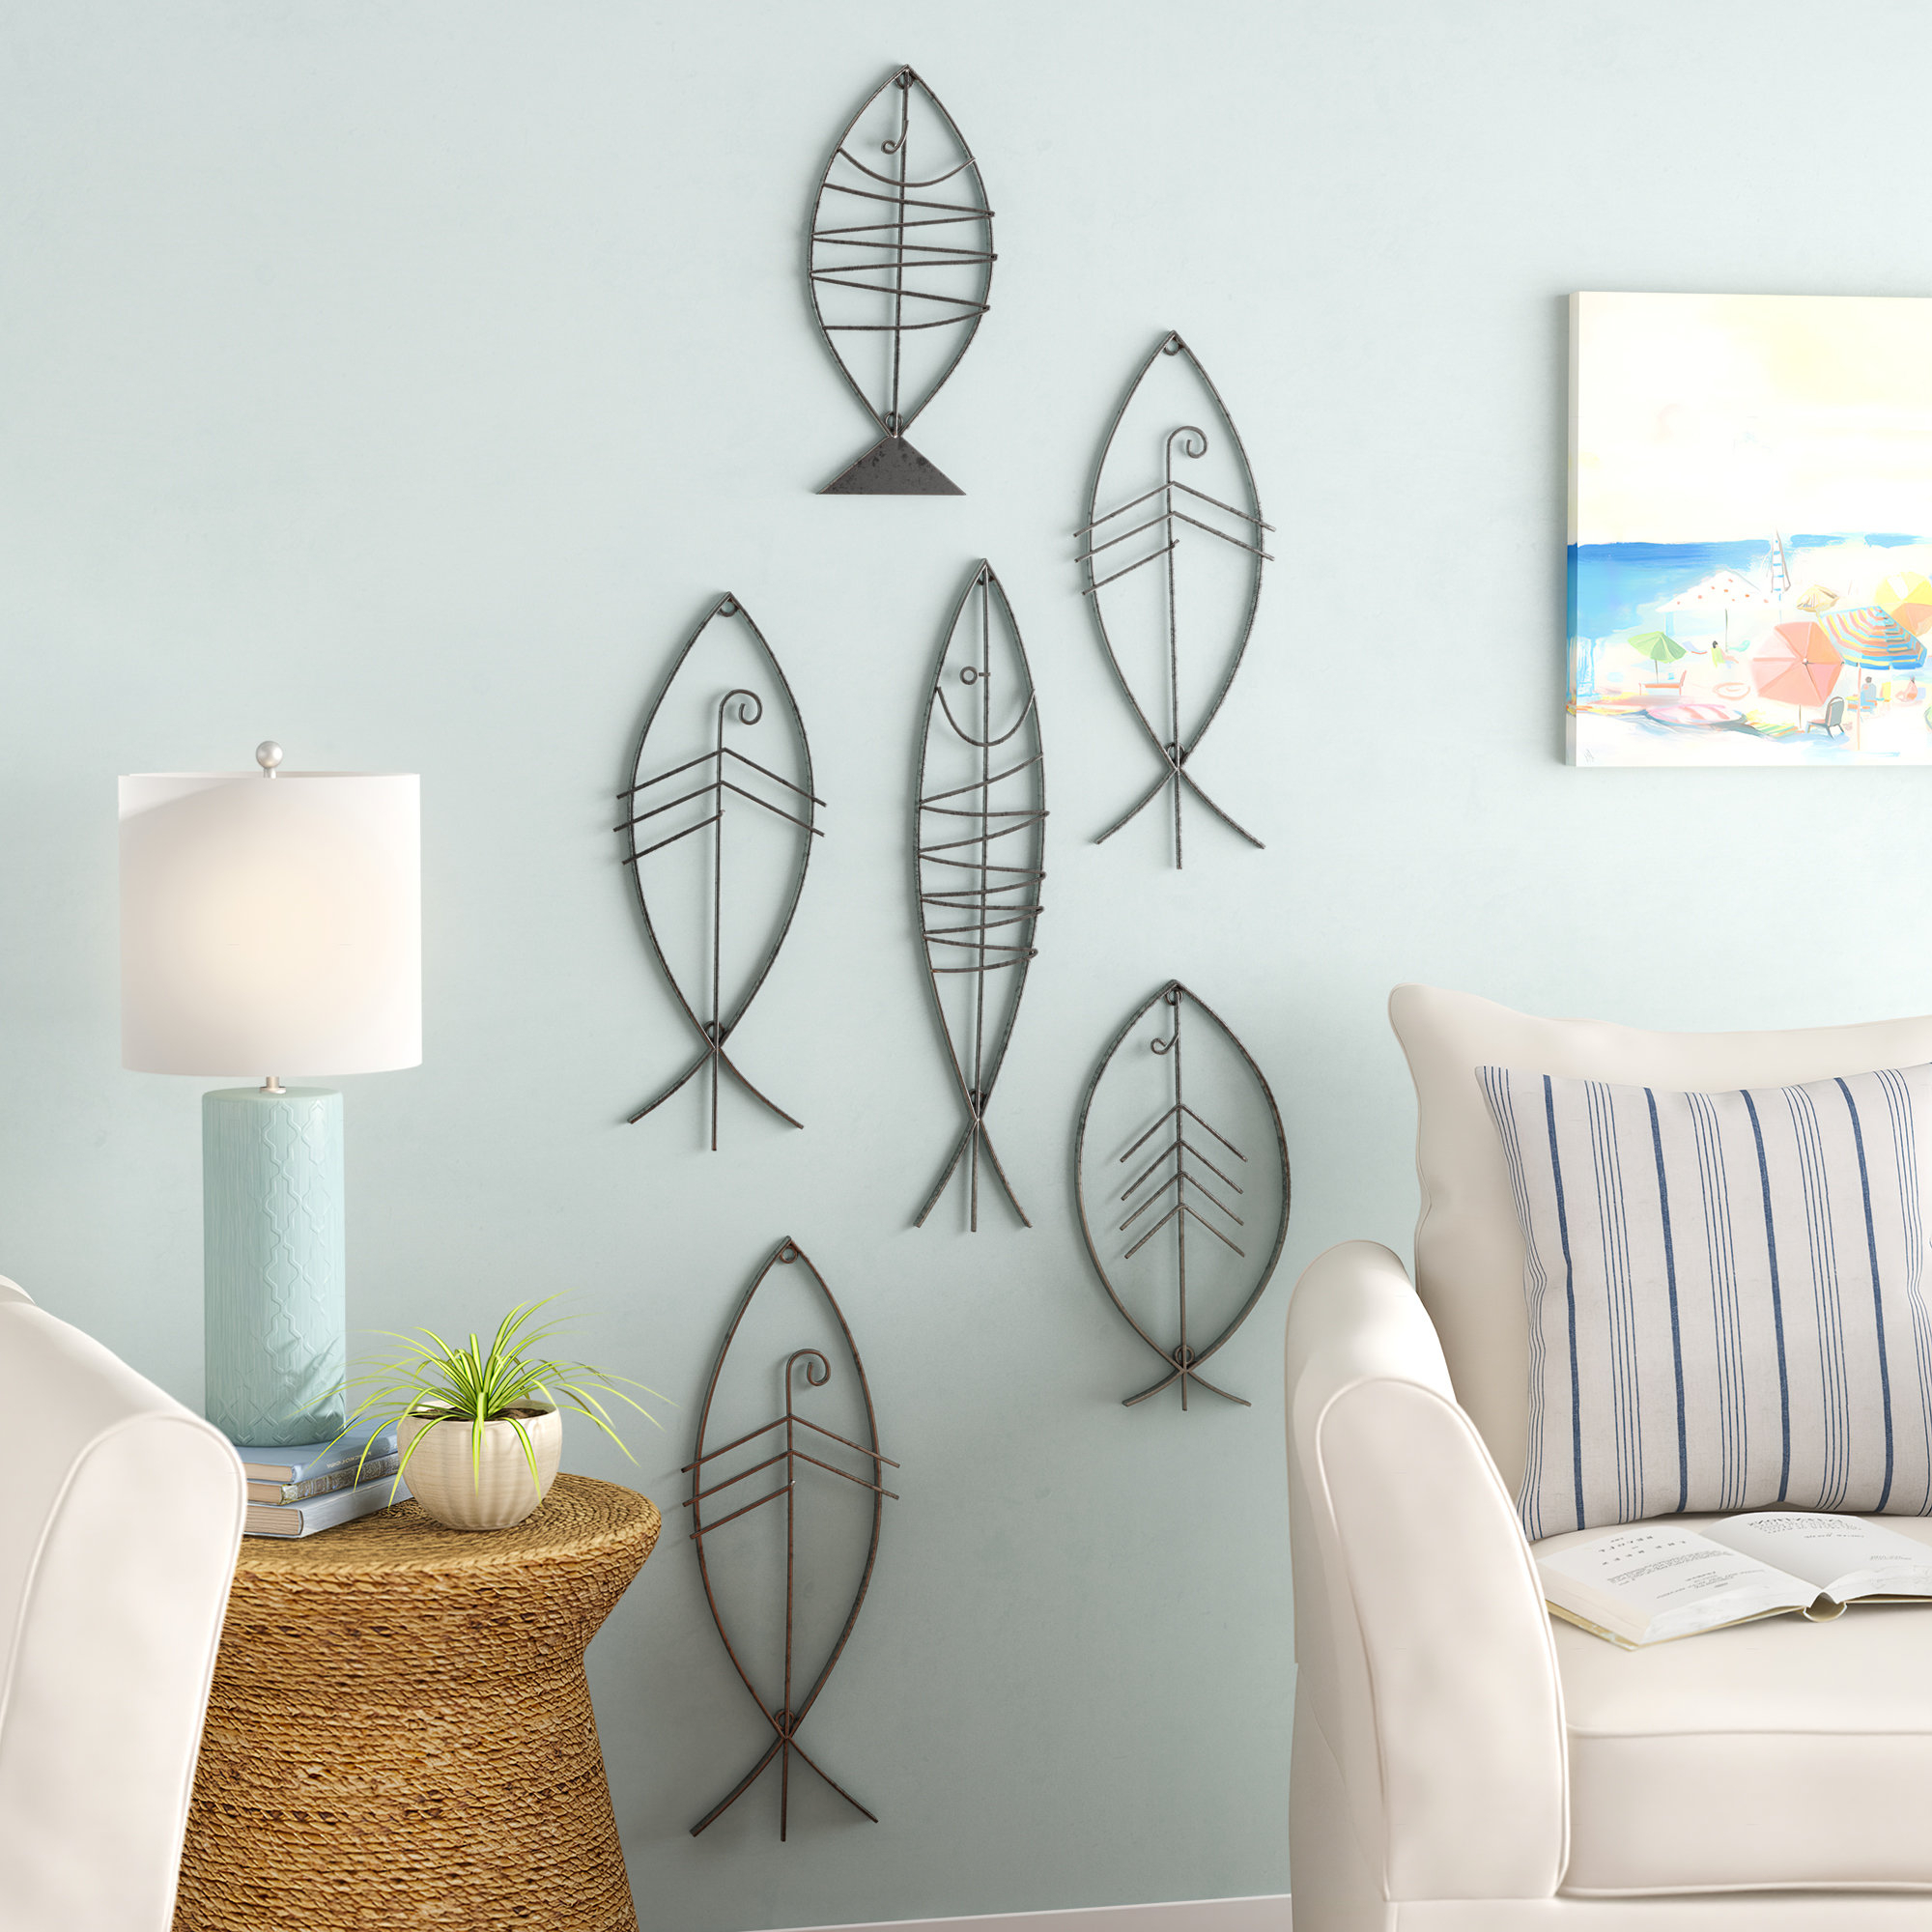 Coastal Metal Fish Wall Decor For Most Recent Highland Dunes 6 Piece Coastal Metal Fish Wall Decor Set & Reviews (View 15 of 20)